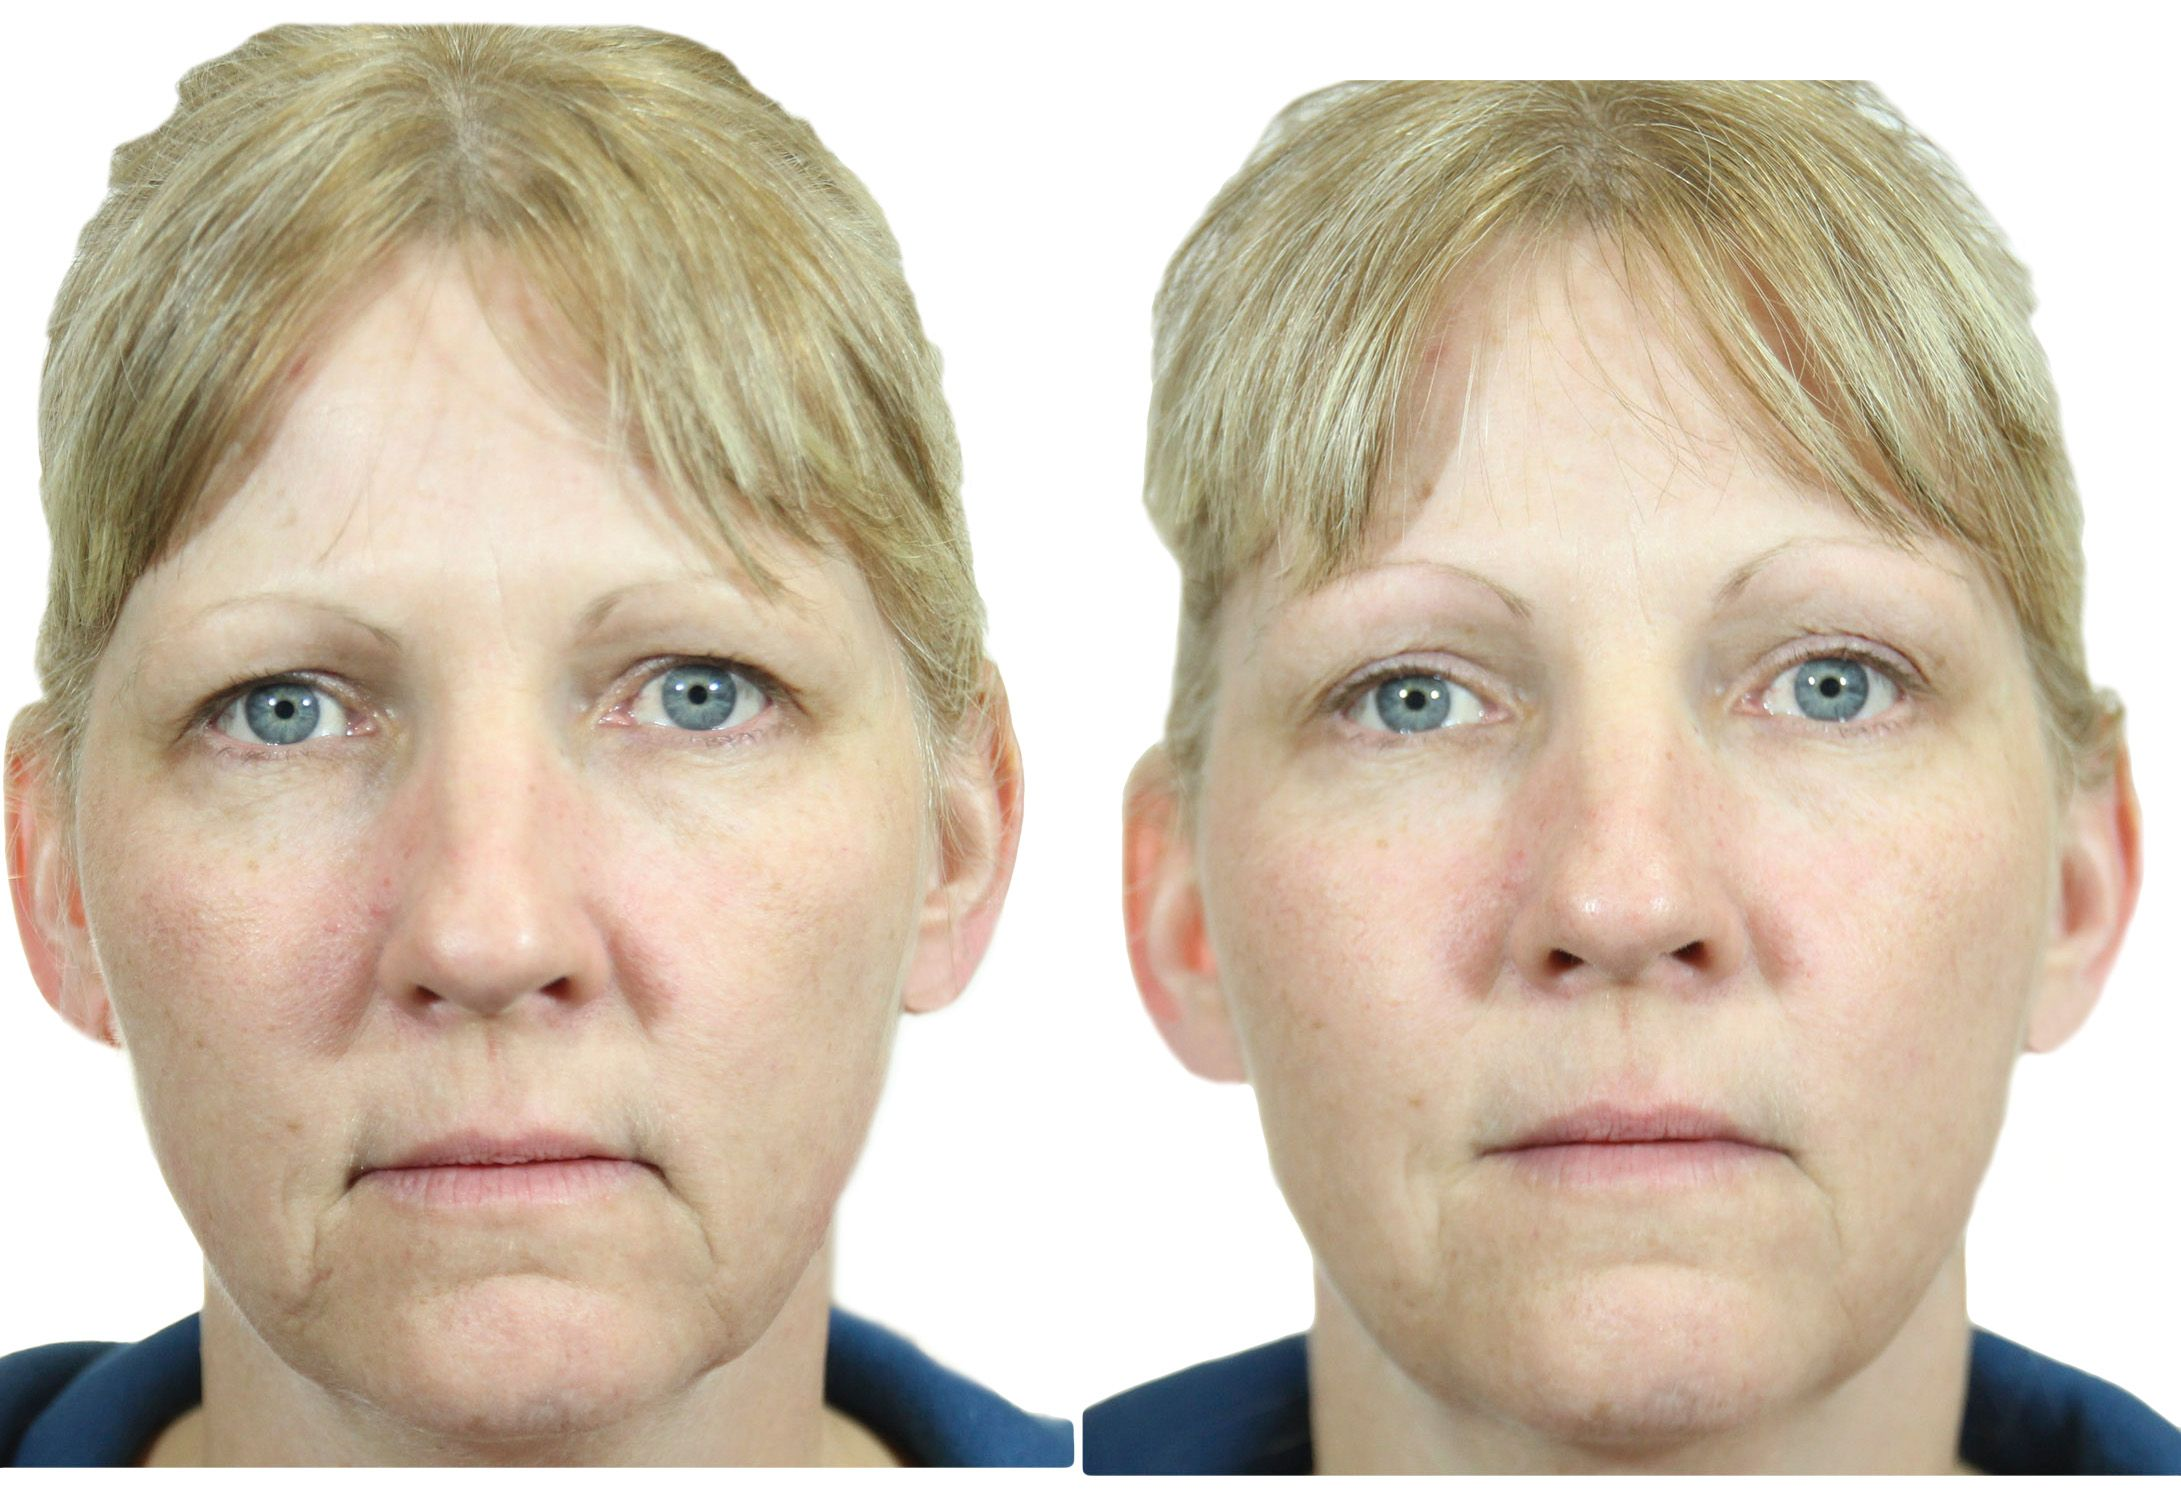 Face gymnastics after 40: golden exercises that will help to prolong youth